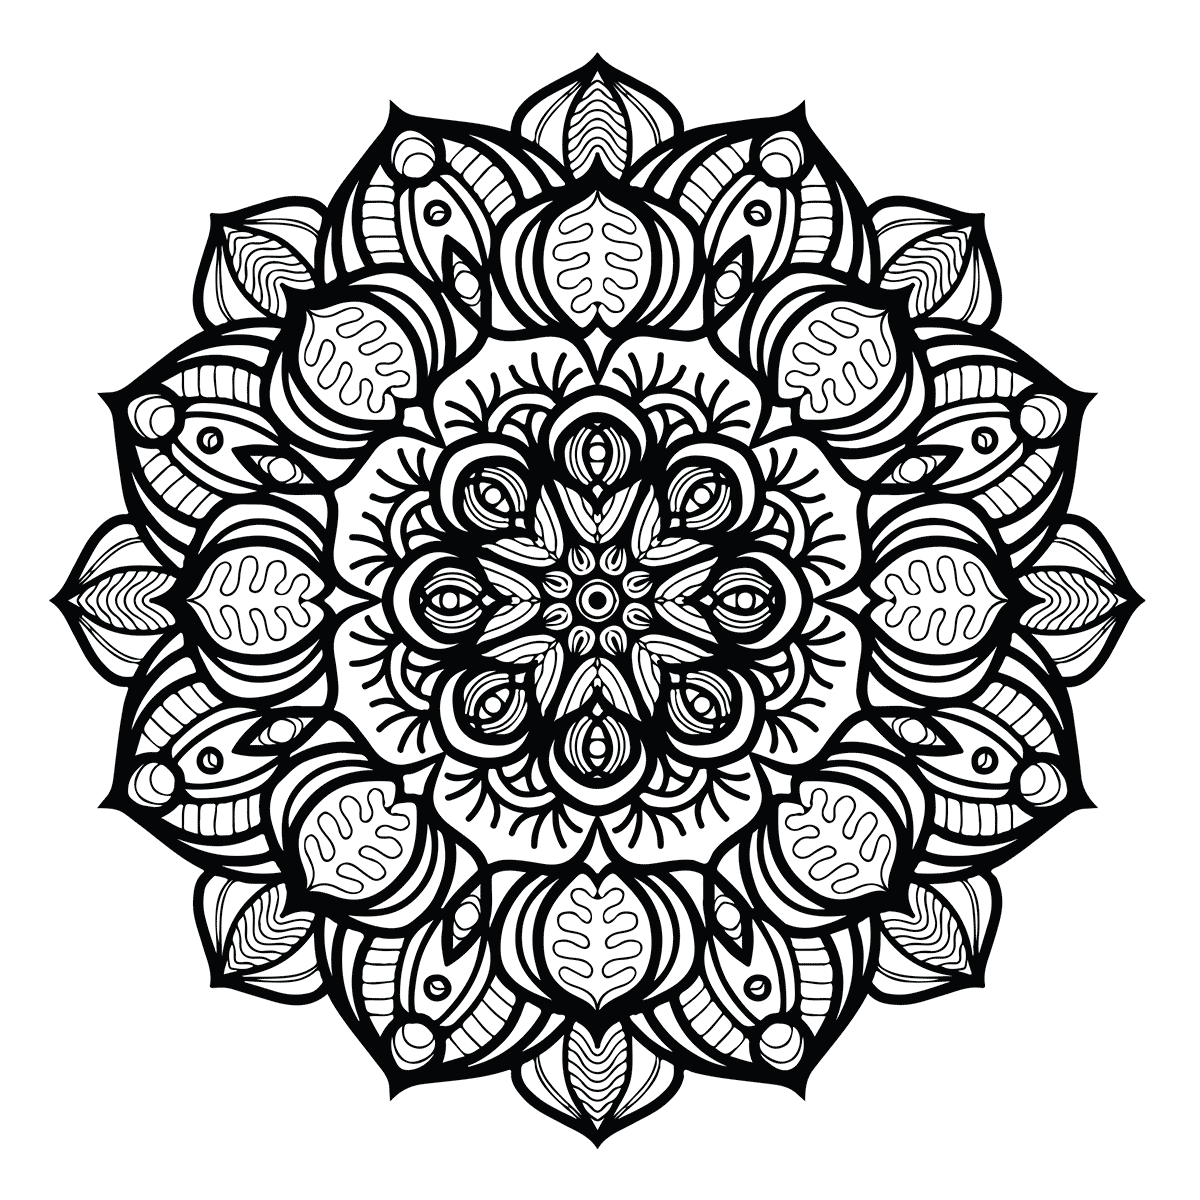 Free coloring page: Floral Mandala Coloring | Free Adult Coloring ...